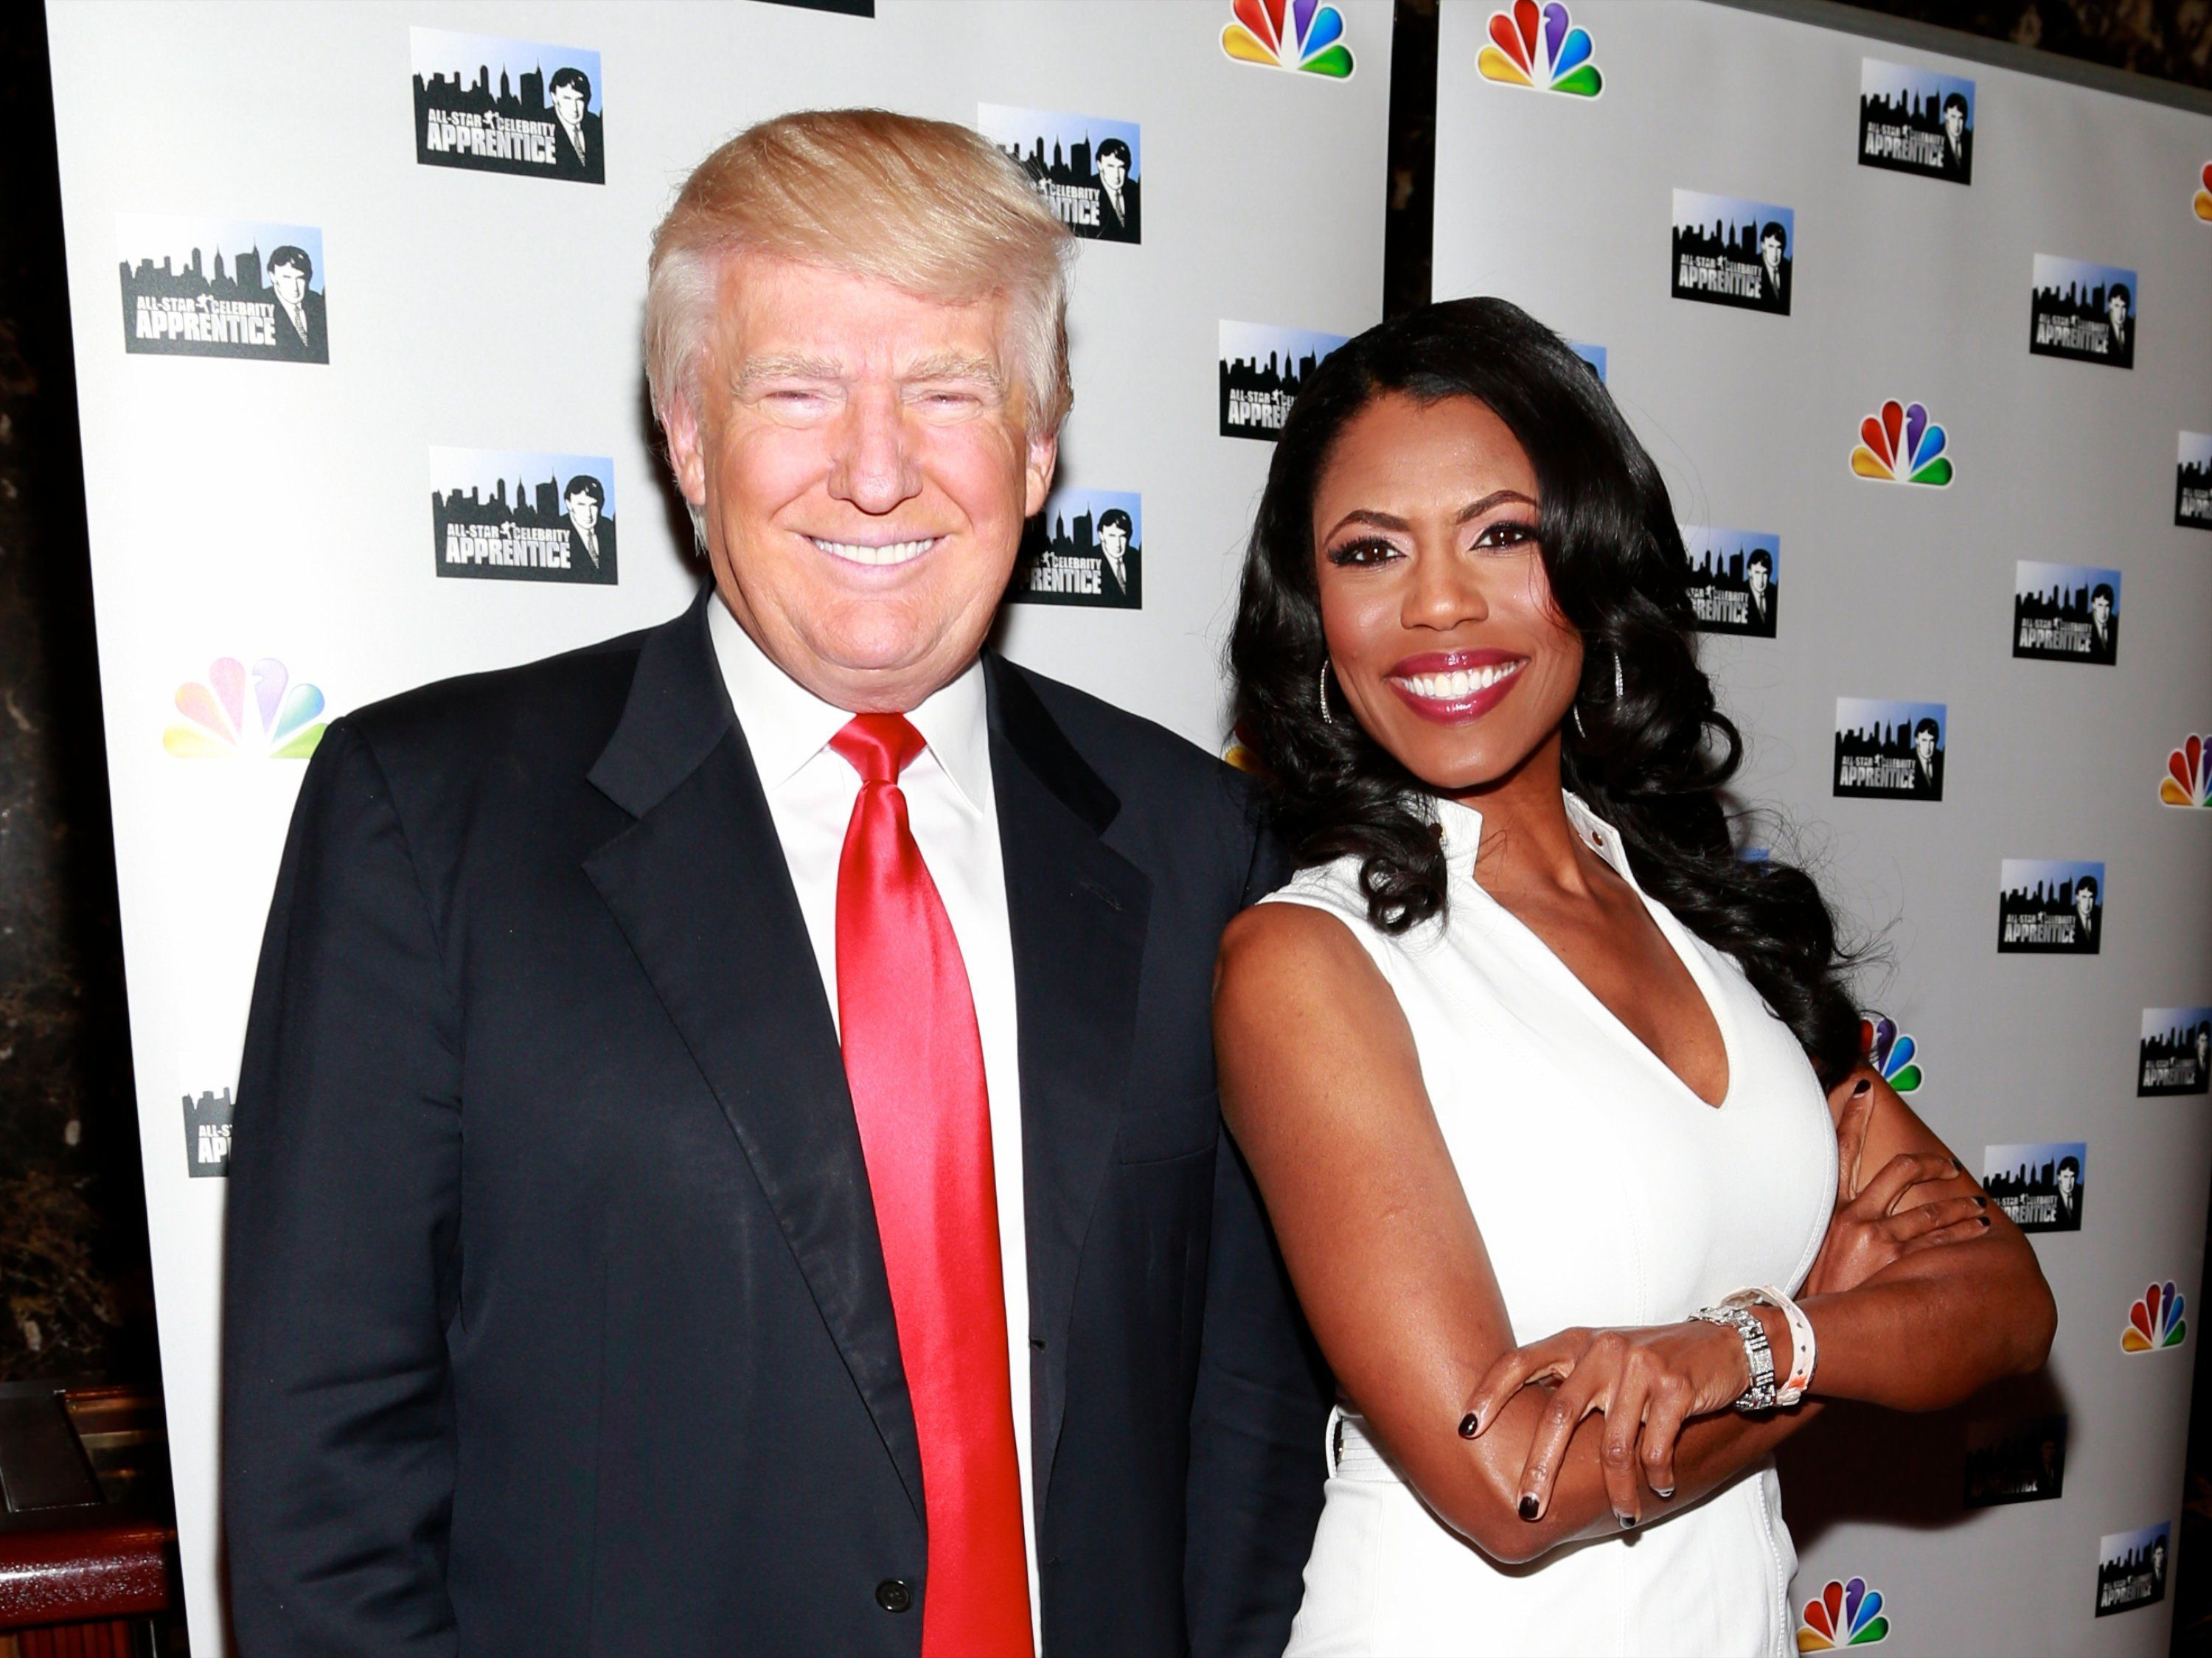 President Trump and Omarosa, BFFs.